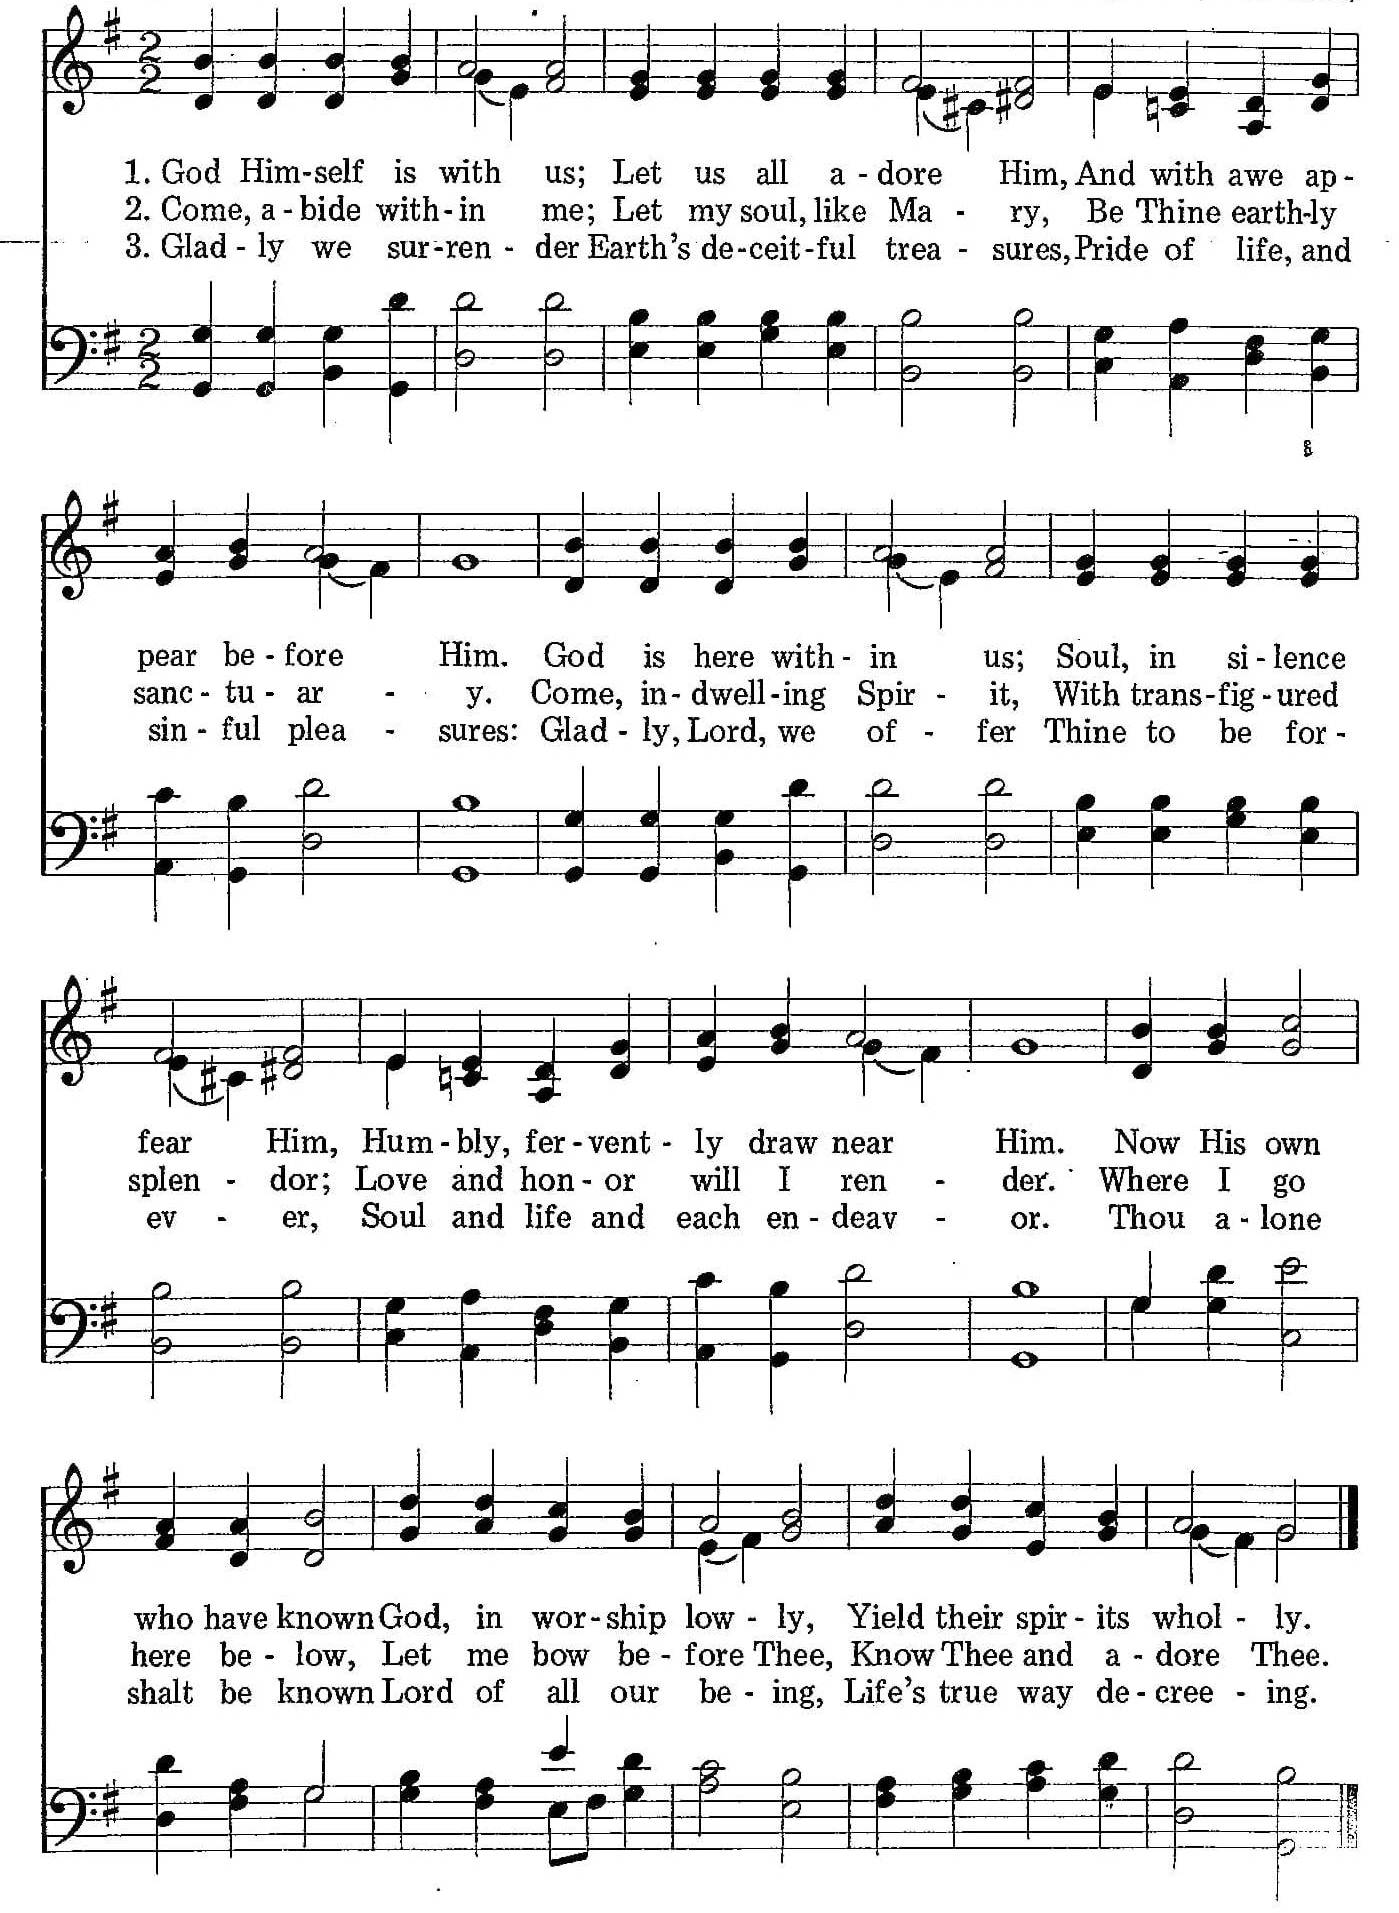 003 – God Himself Is With Us sheet music